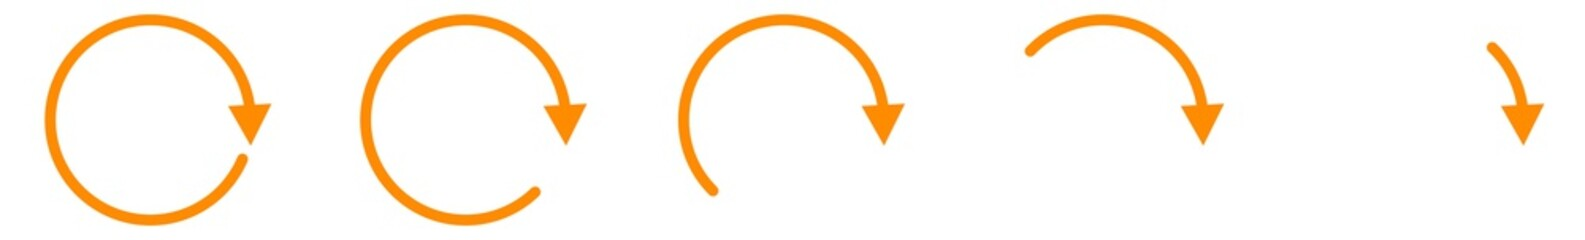 Arrow Icon Orange | Circle Arrows | Infographic Illustration | Direction Symbol | Curved Loading Logo | Up Sign | Isolated | Variations